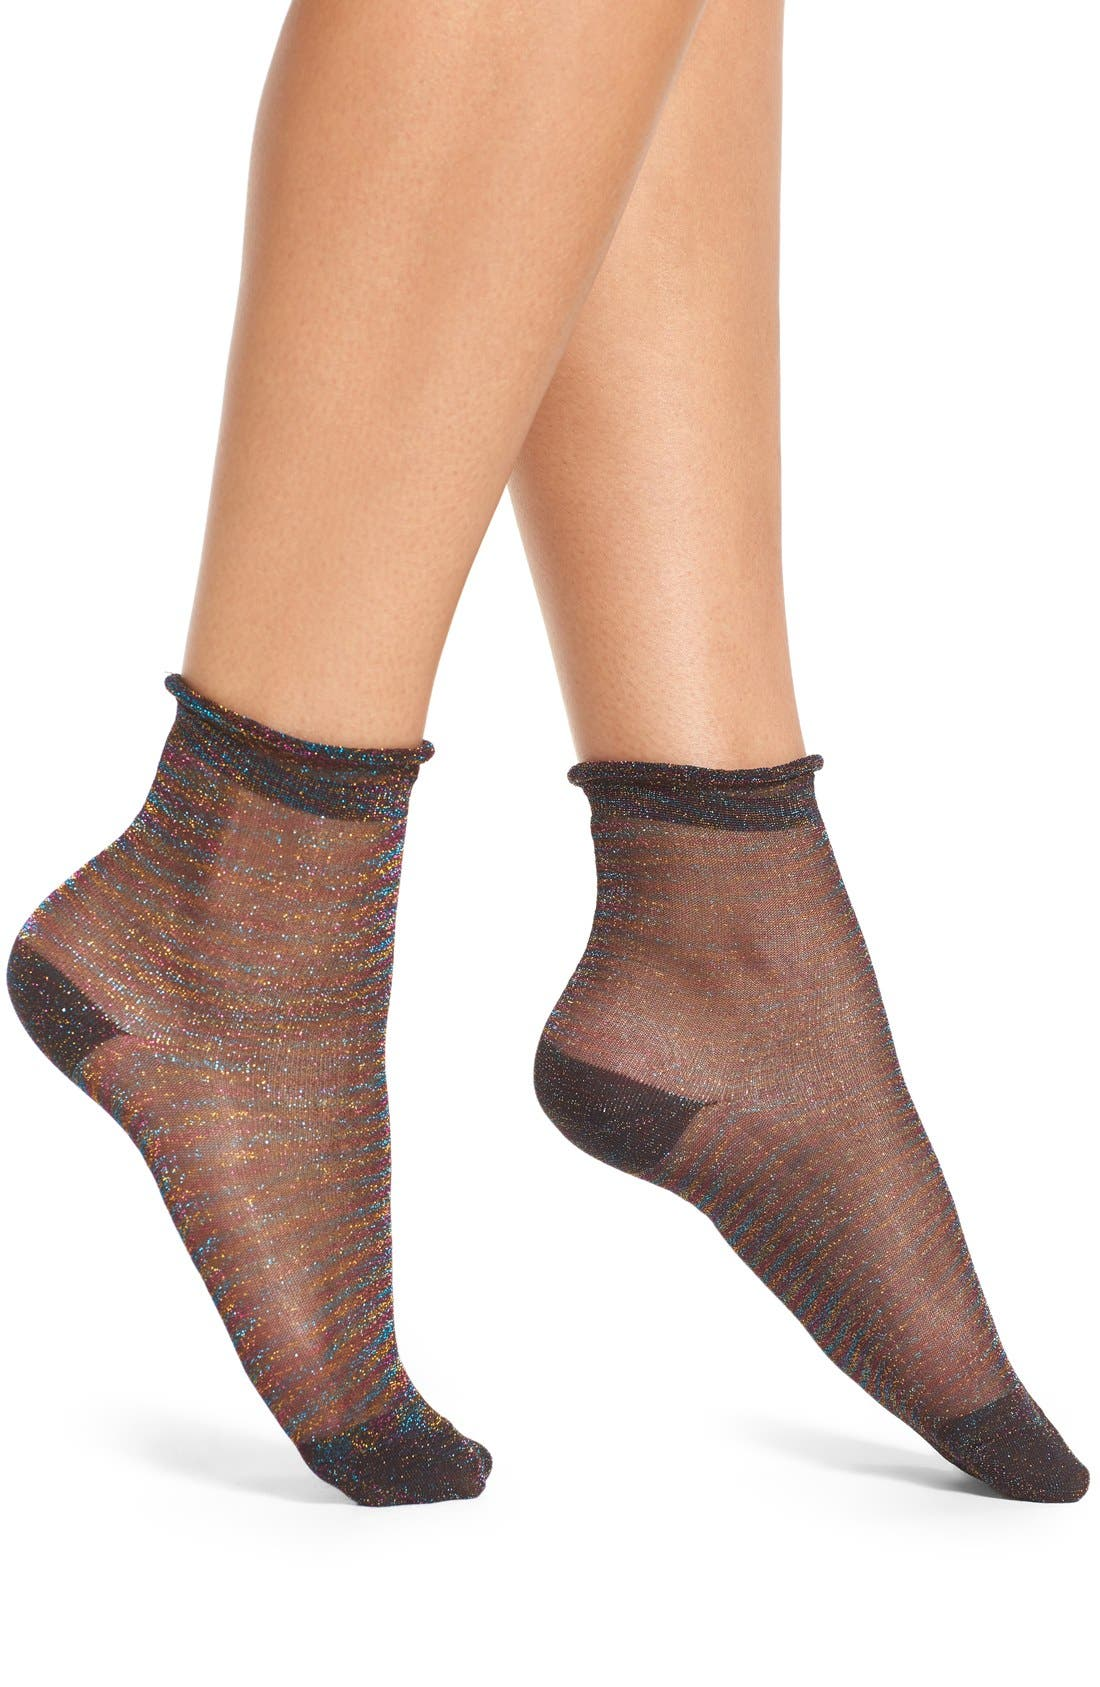 FREE PEOPLE Glimmer Oasis Ankle Socks, Main, color, 001